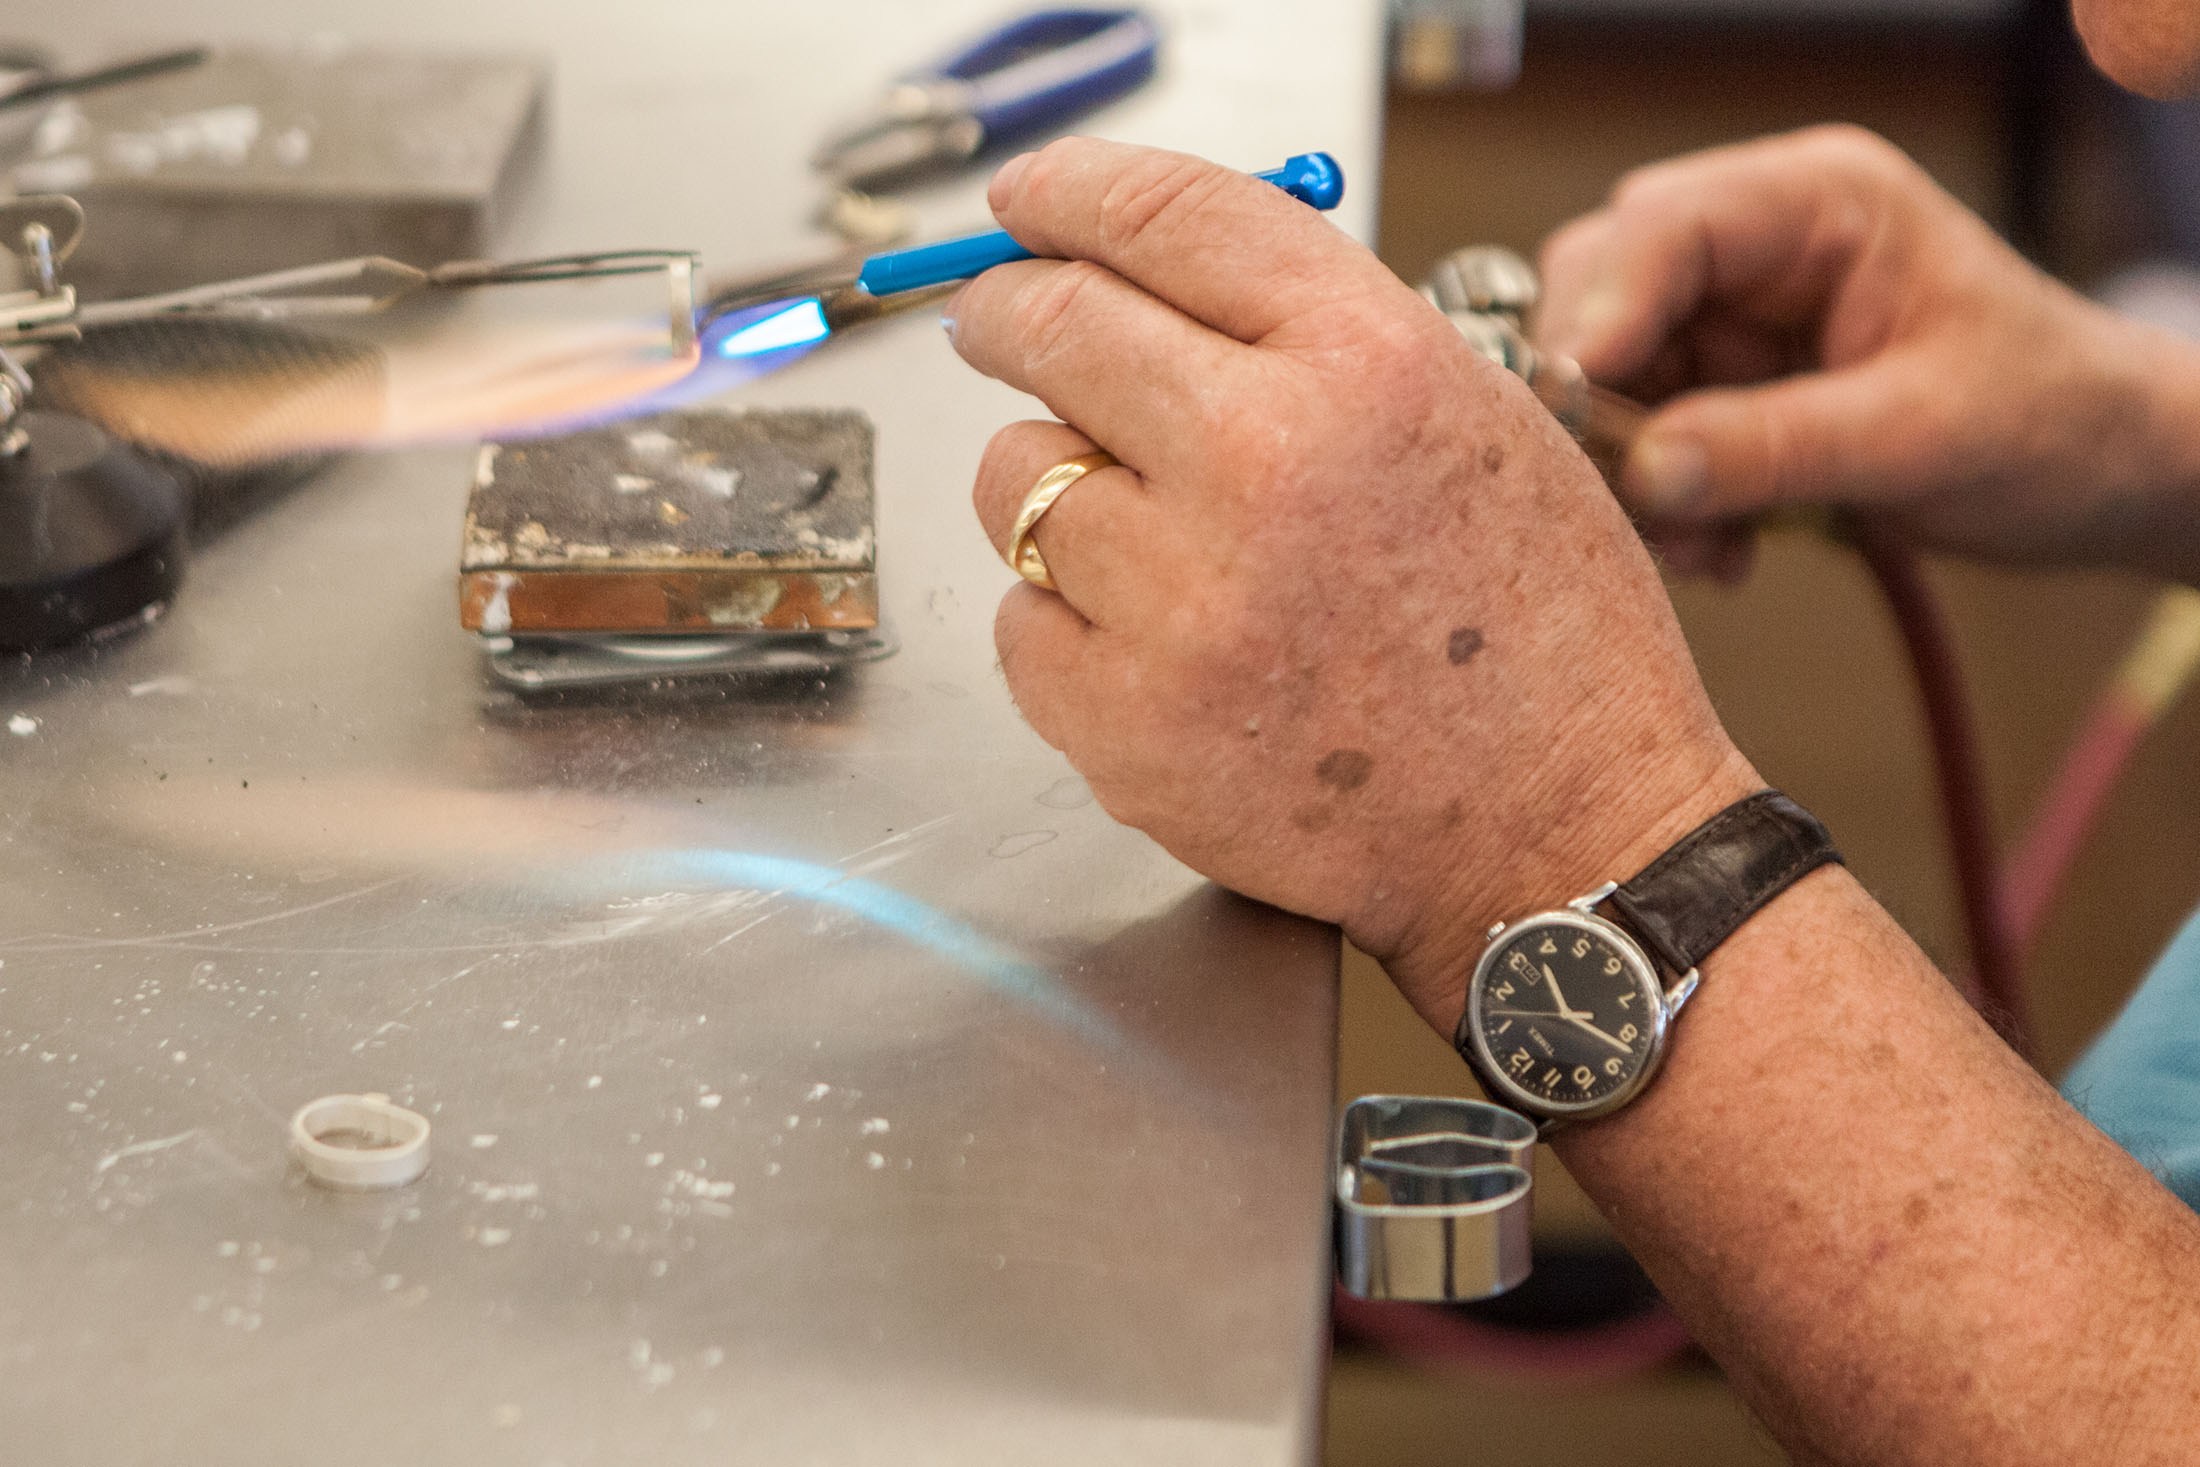 Close-up photograph of hands using an acetylene torch to solder a silver ring